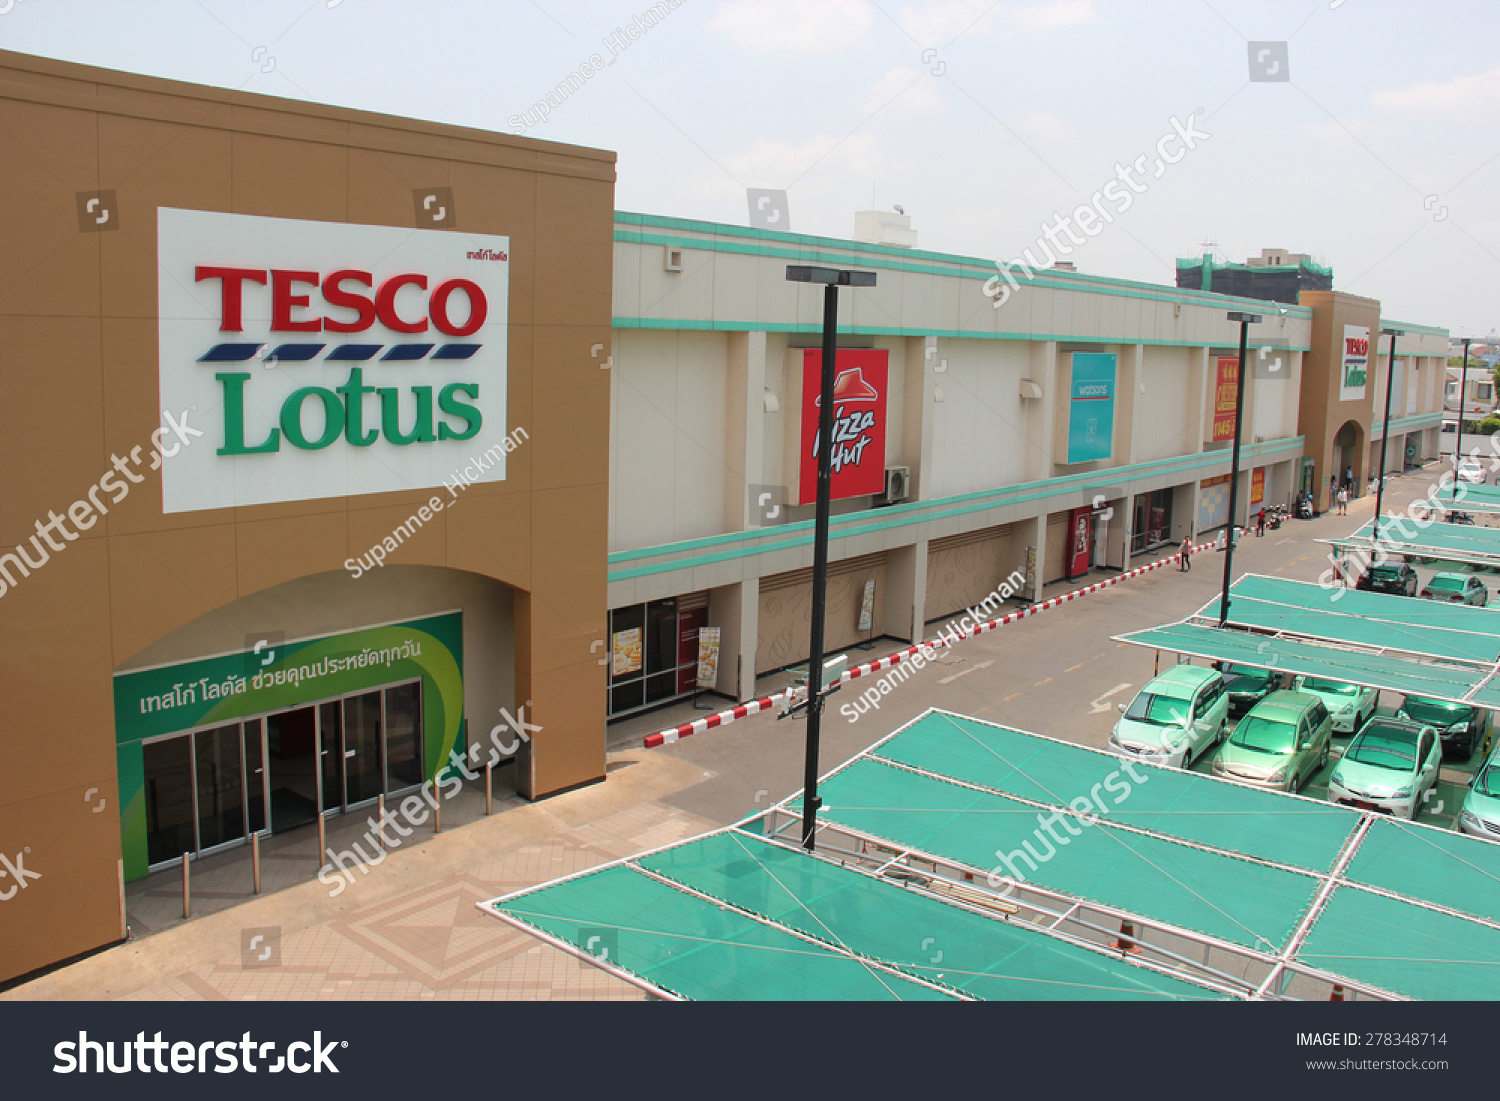 tesco lotus thailand In thailand, tesco lotus was a joint venture of the charoen pokphand group and tesco, but facing criticism over the growth of hypermarkets cp group sold its tesco.